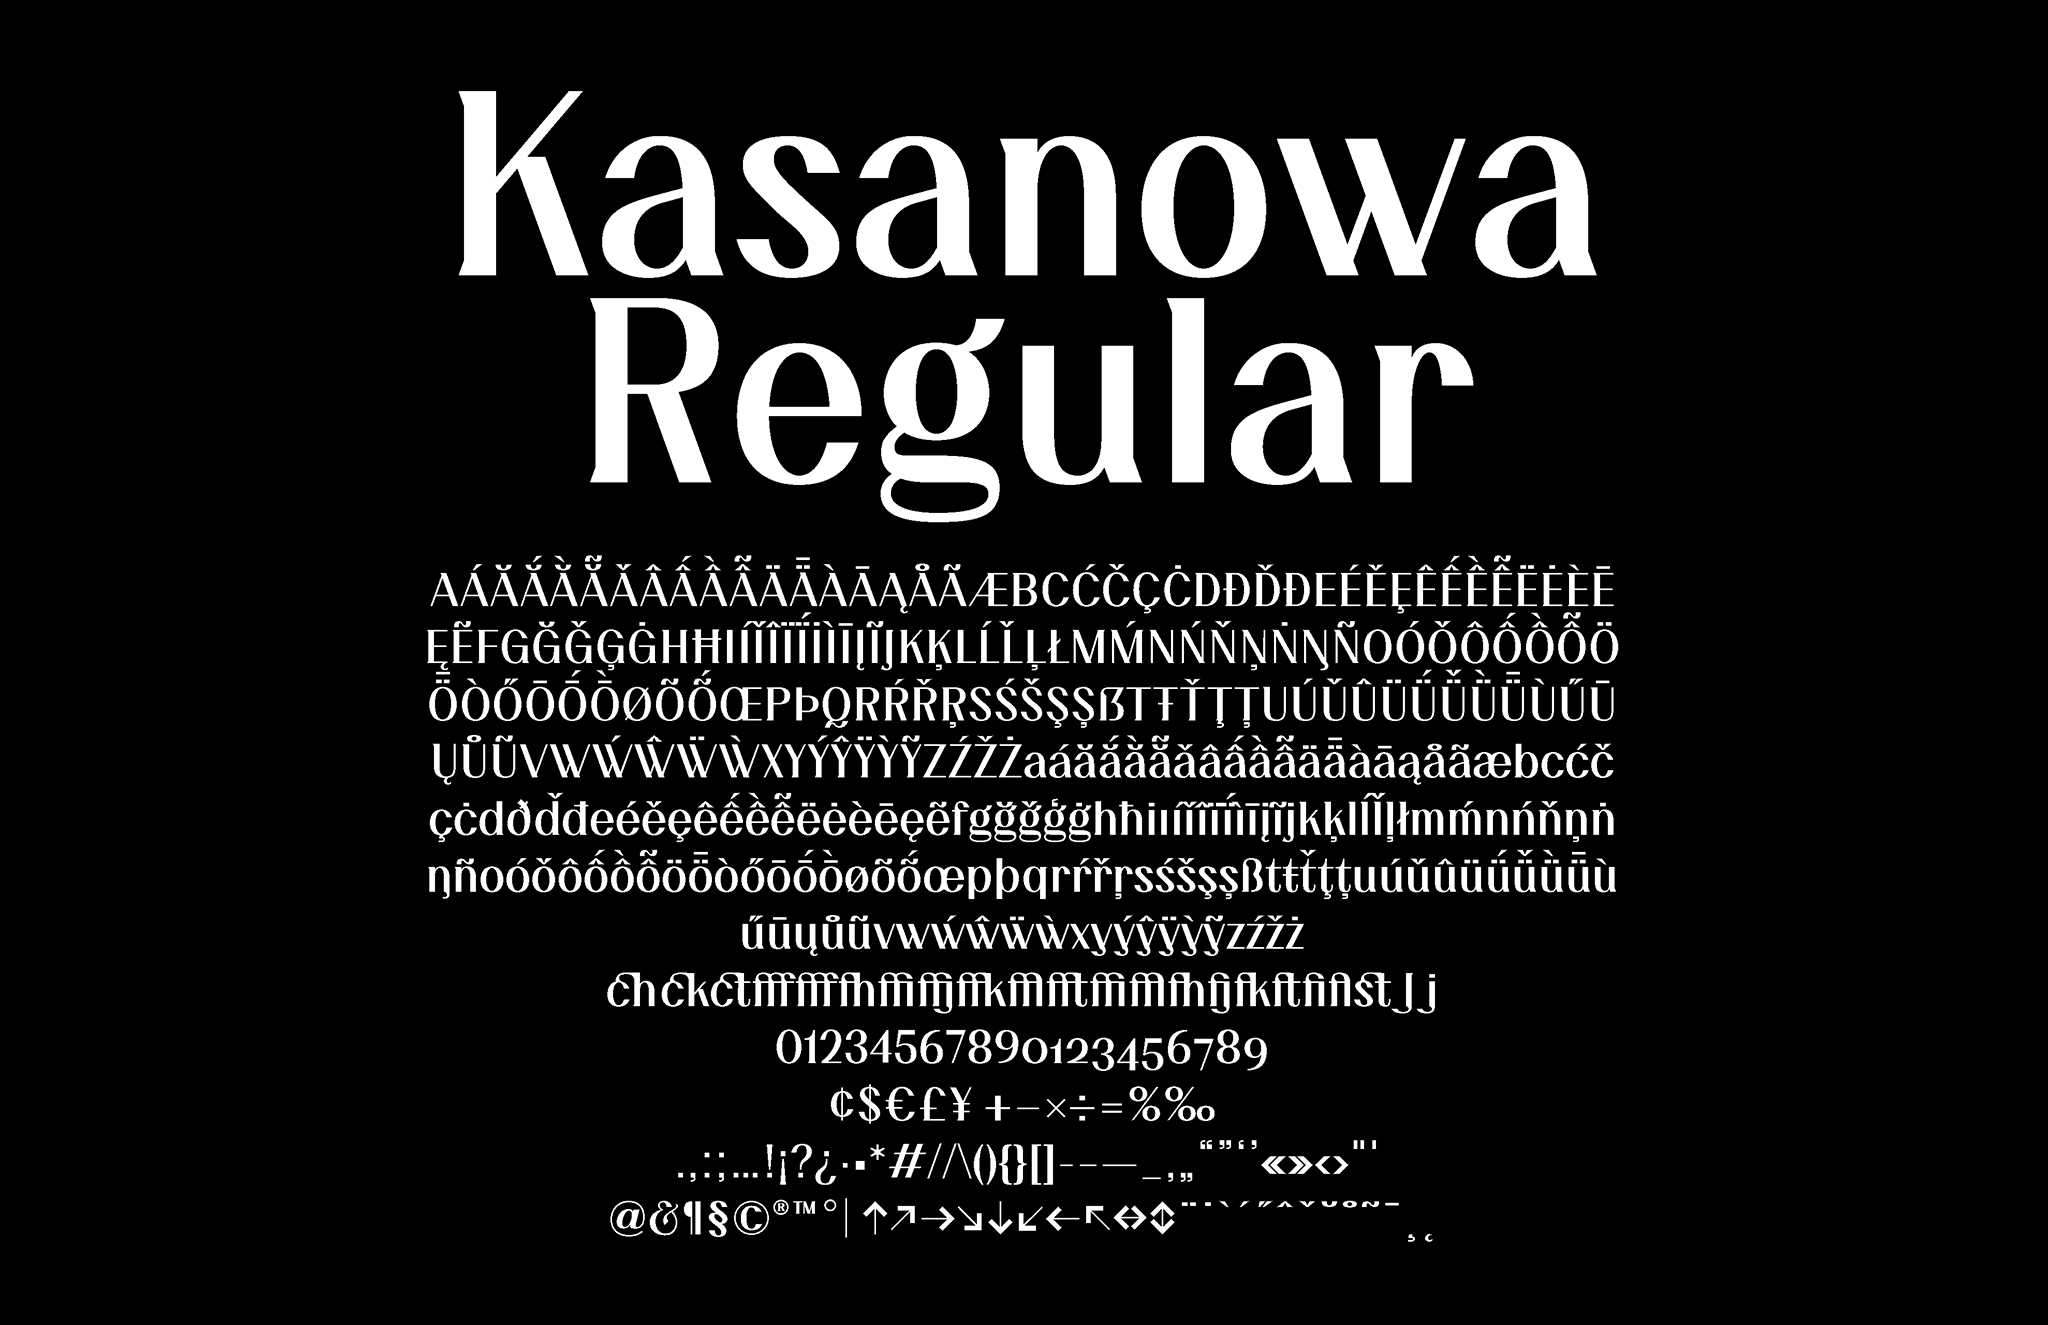 Kasanowa Regular